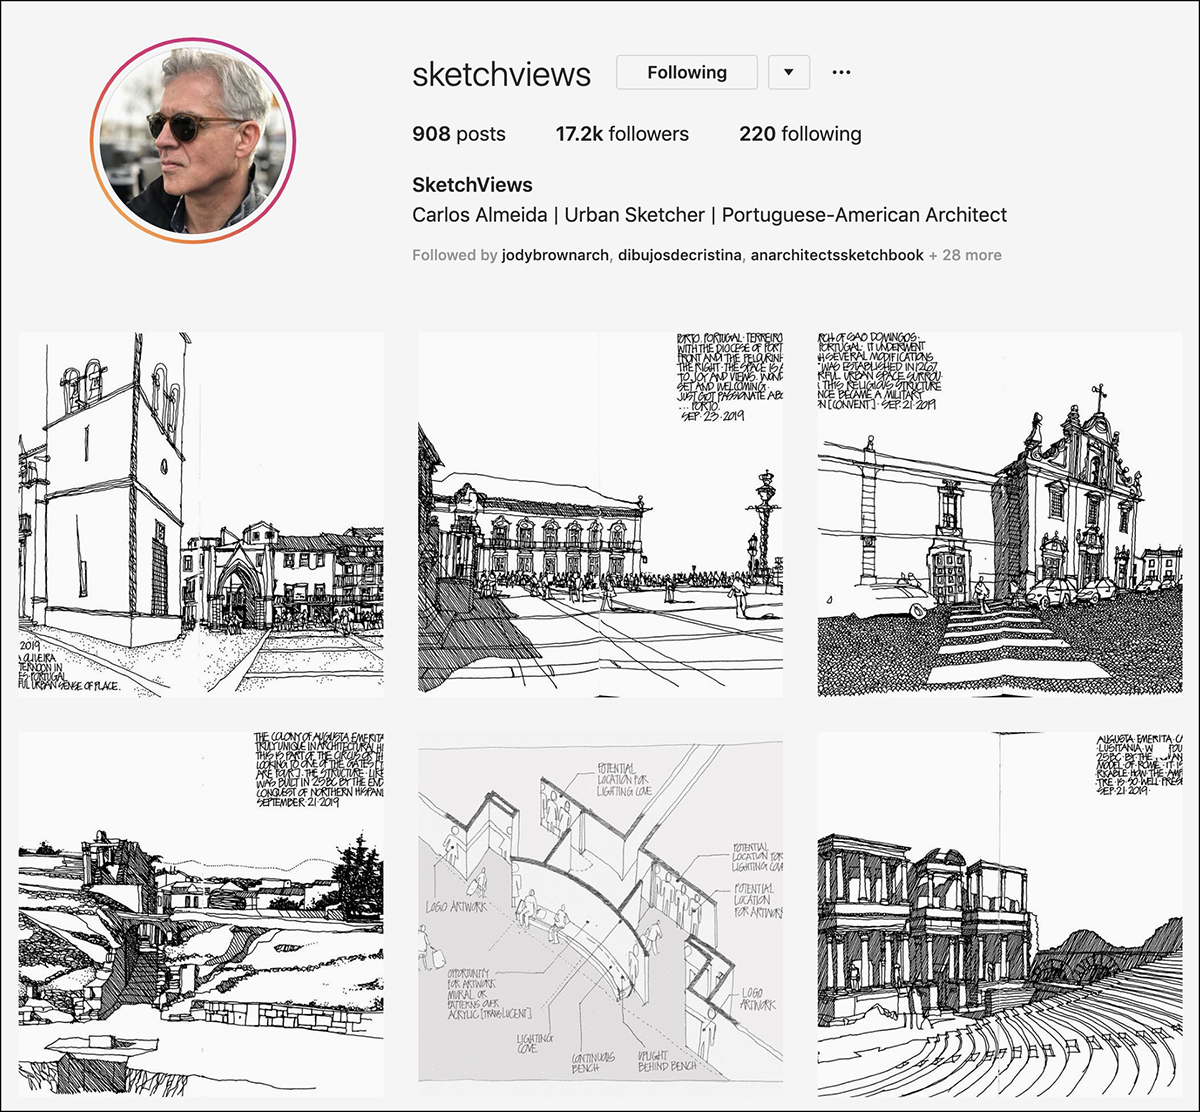 sketchviews Instagram Account - good for sketching